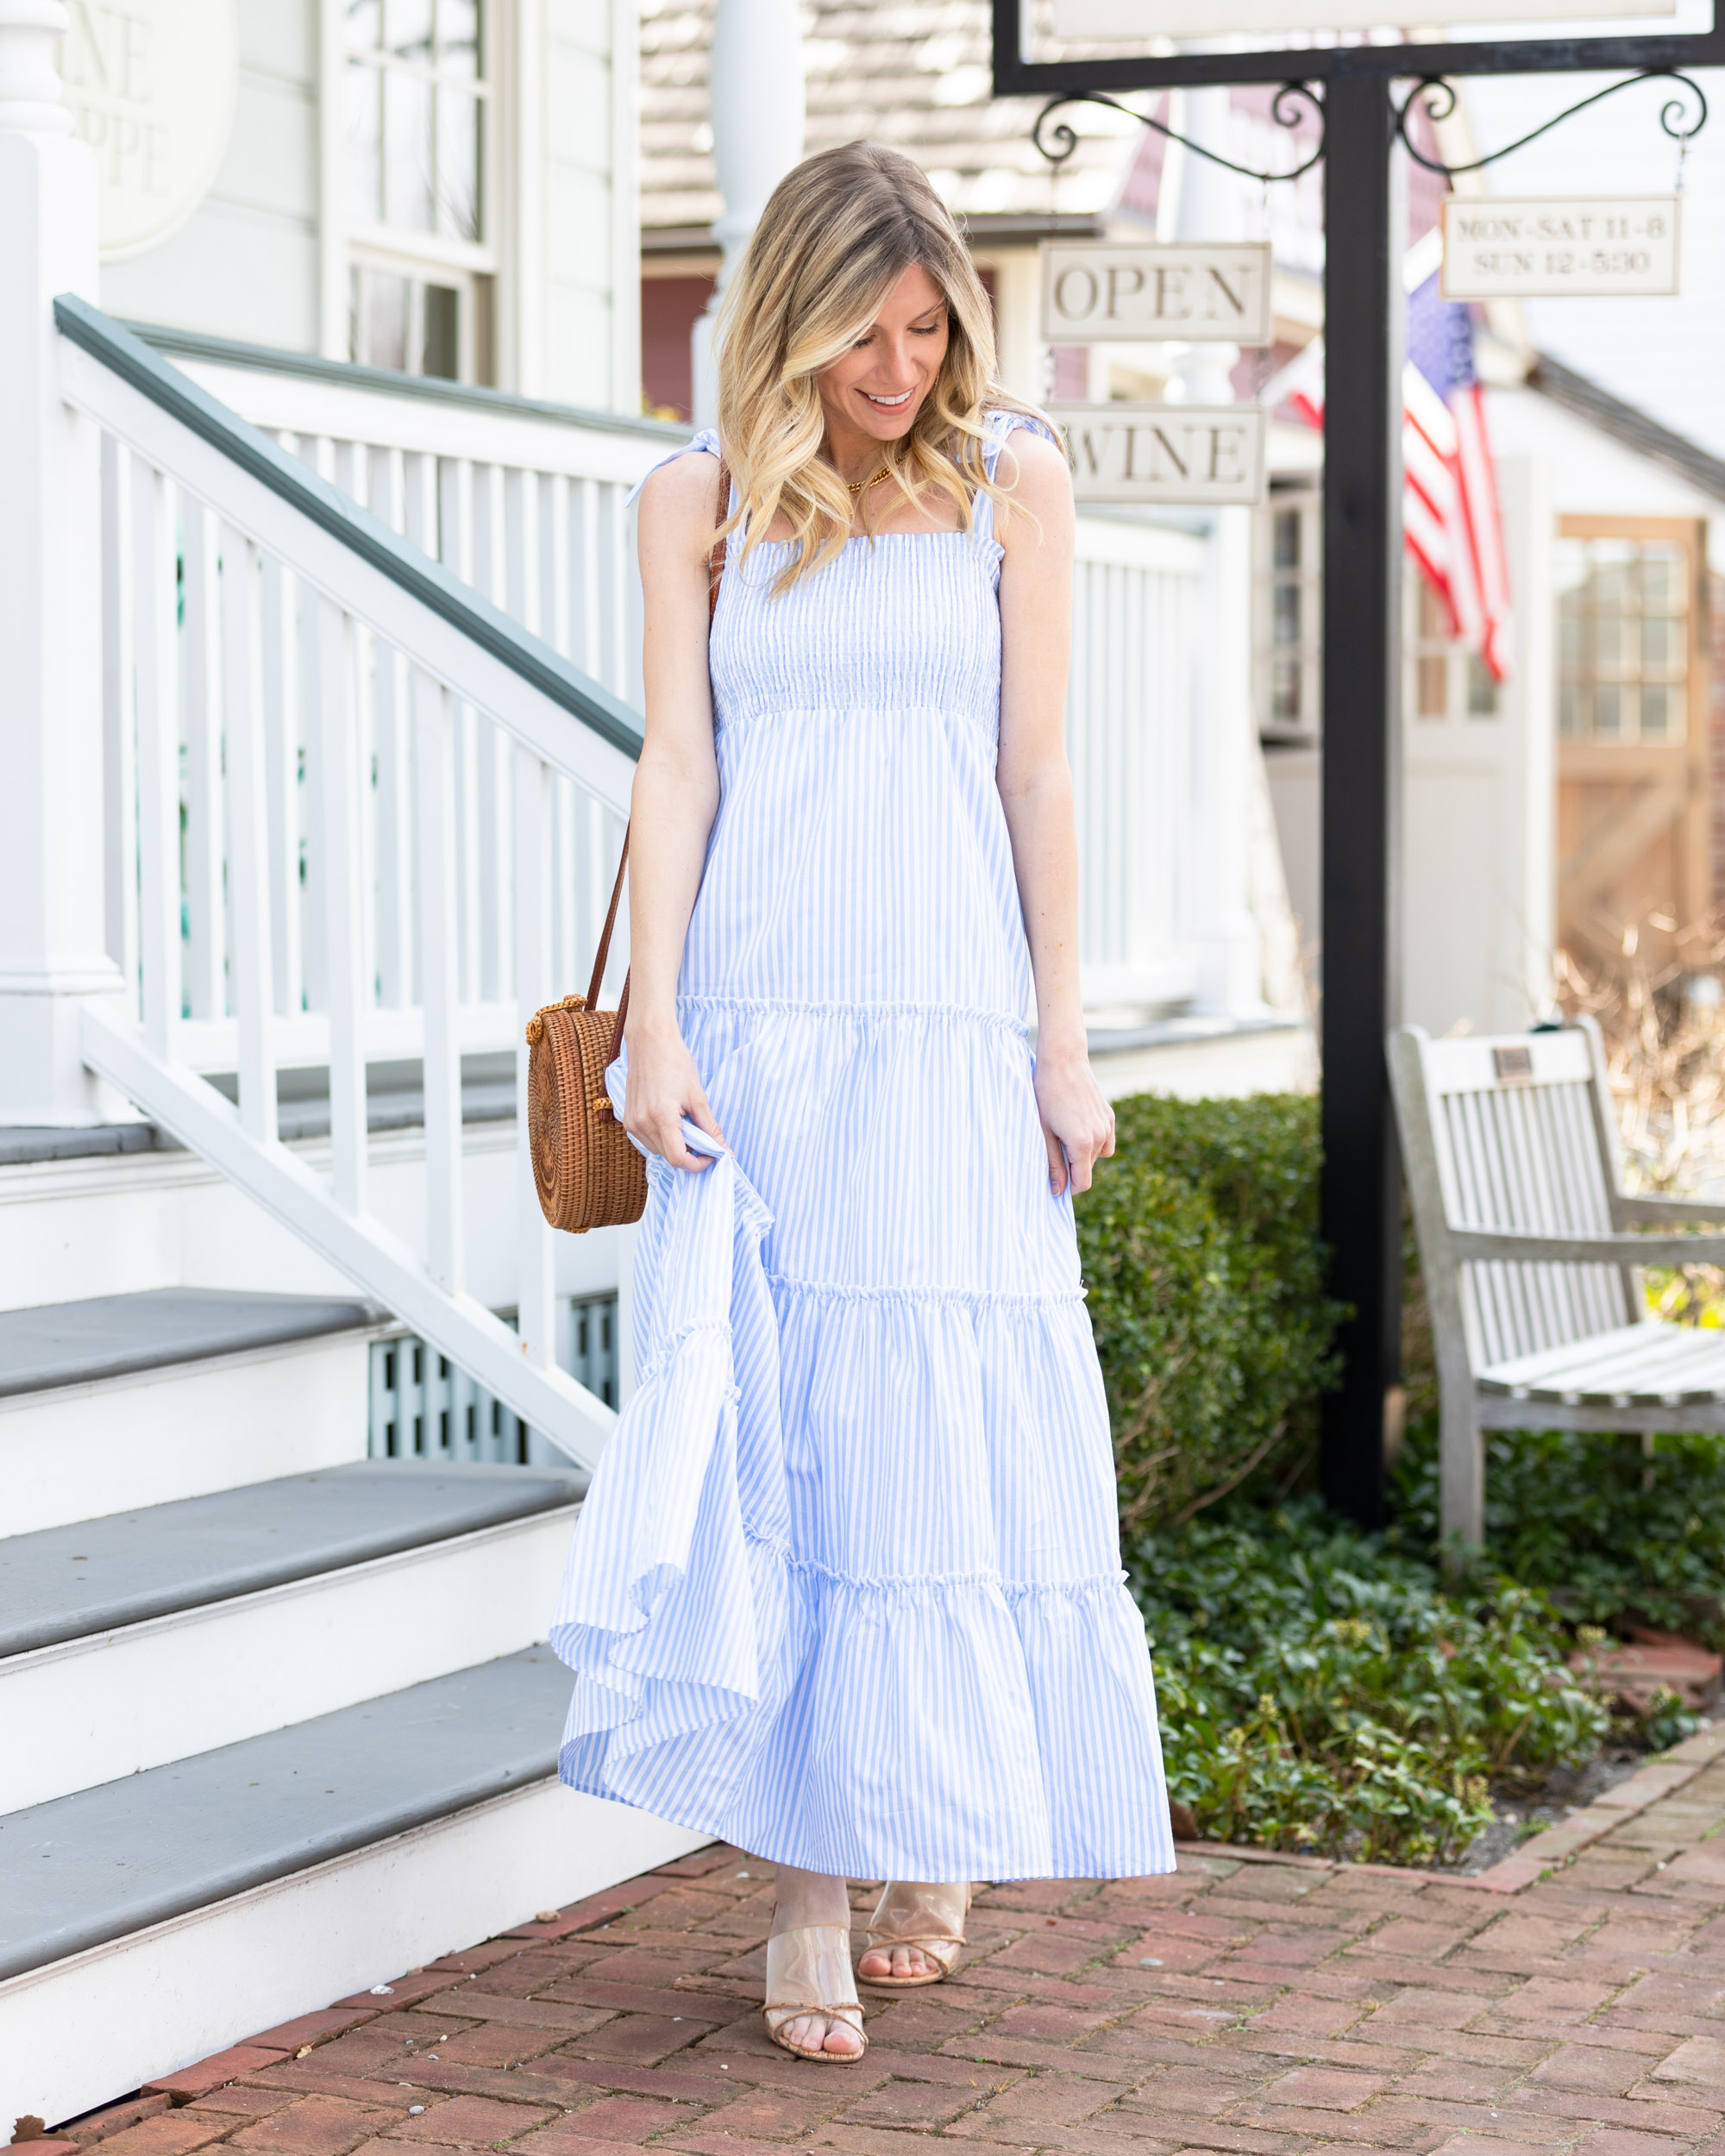 cmcoving-x-pink-lily-boutique-striped-blue-and-white-sundress-the-glamorous-gal